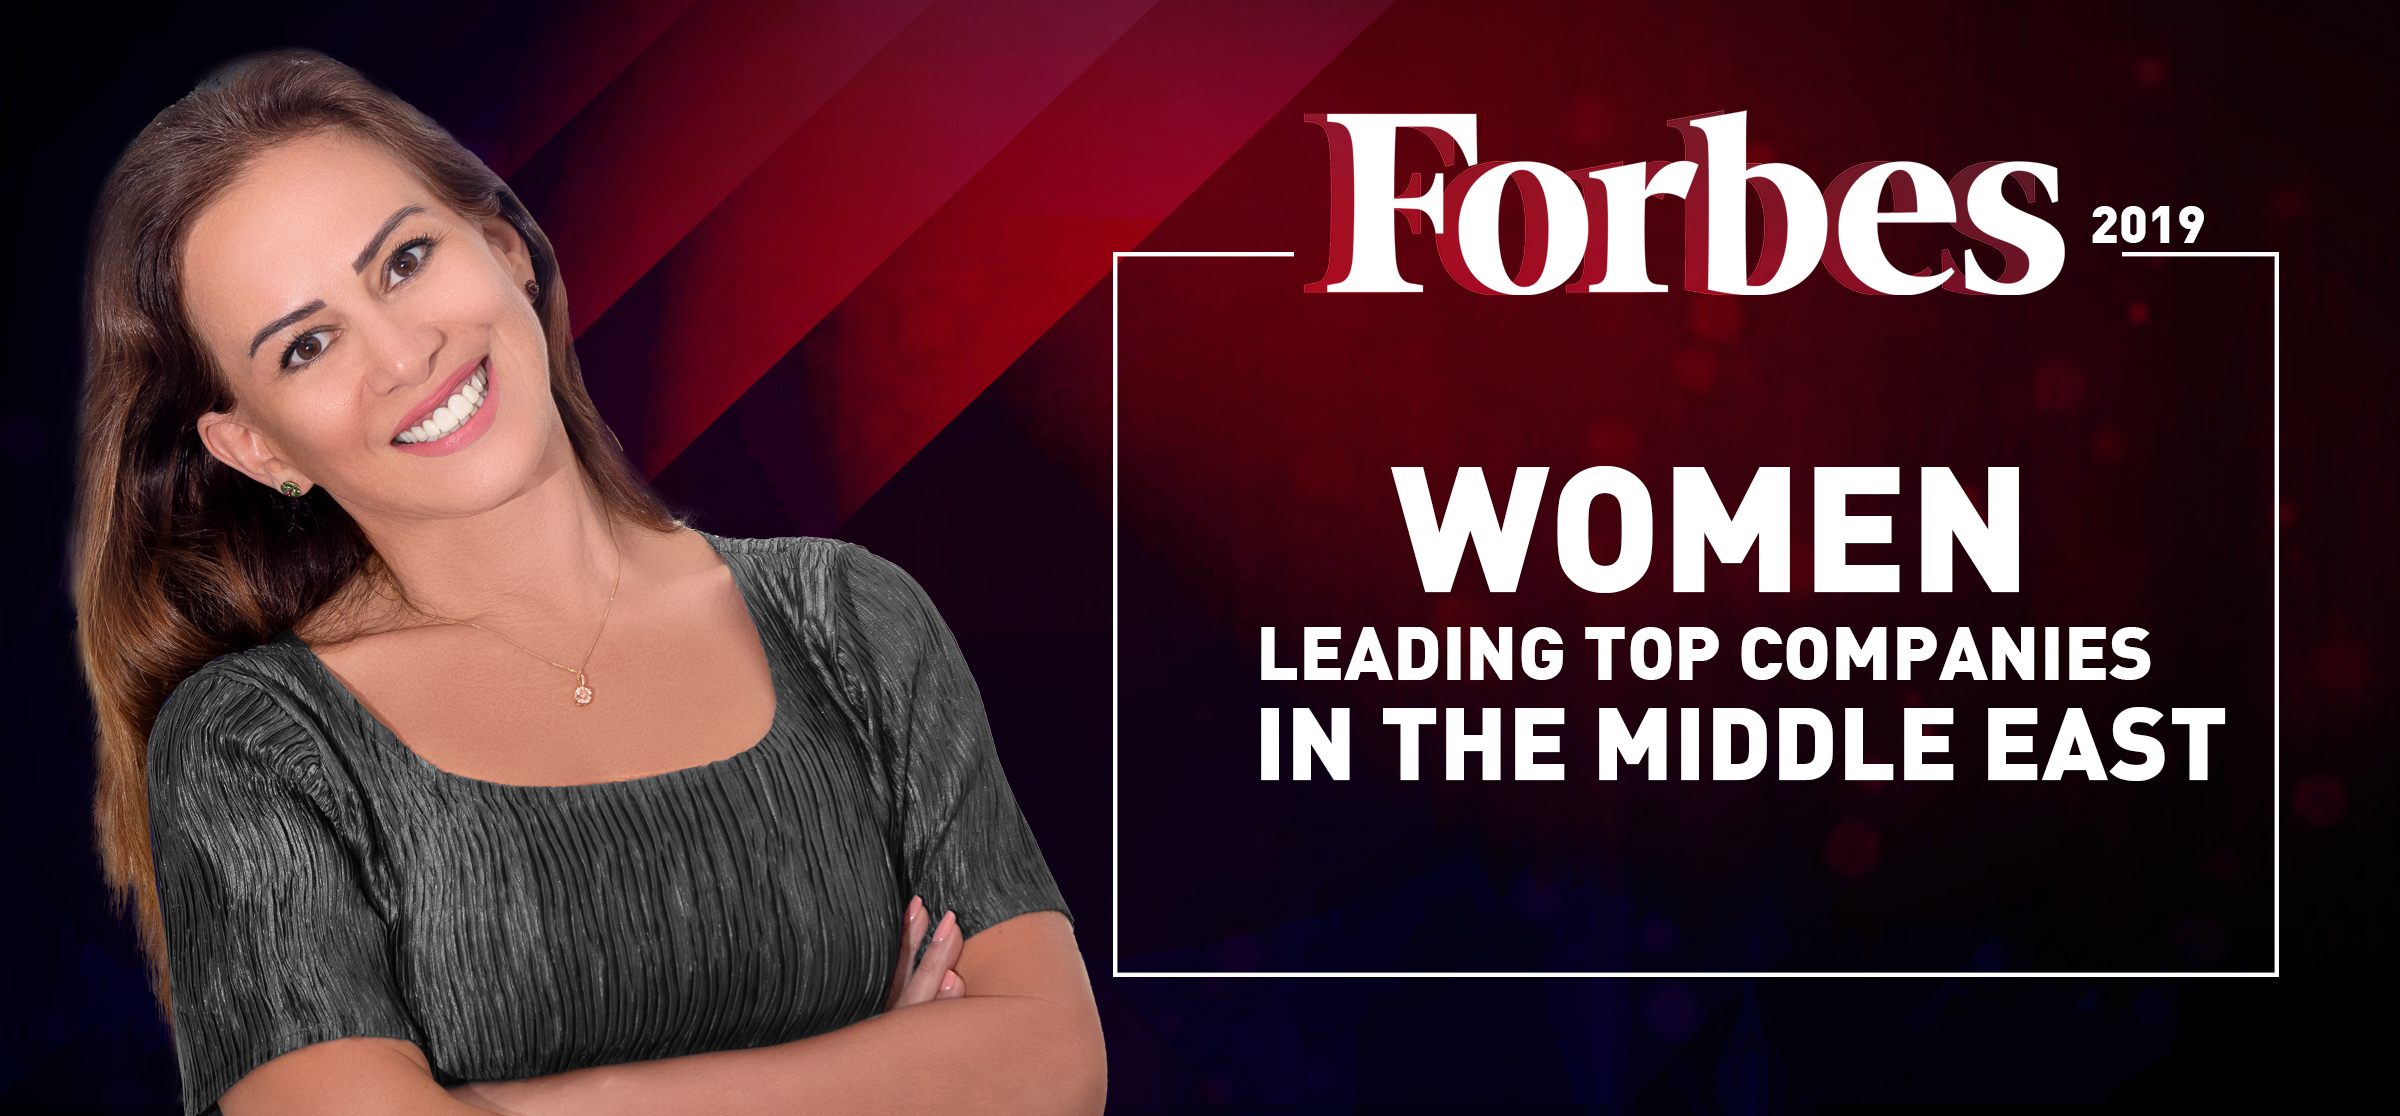 INGOT Group Earns Spot on Forbes List of Women Leading Top Companies in the Middle East